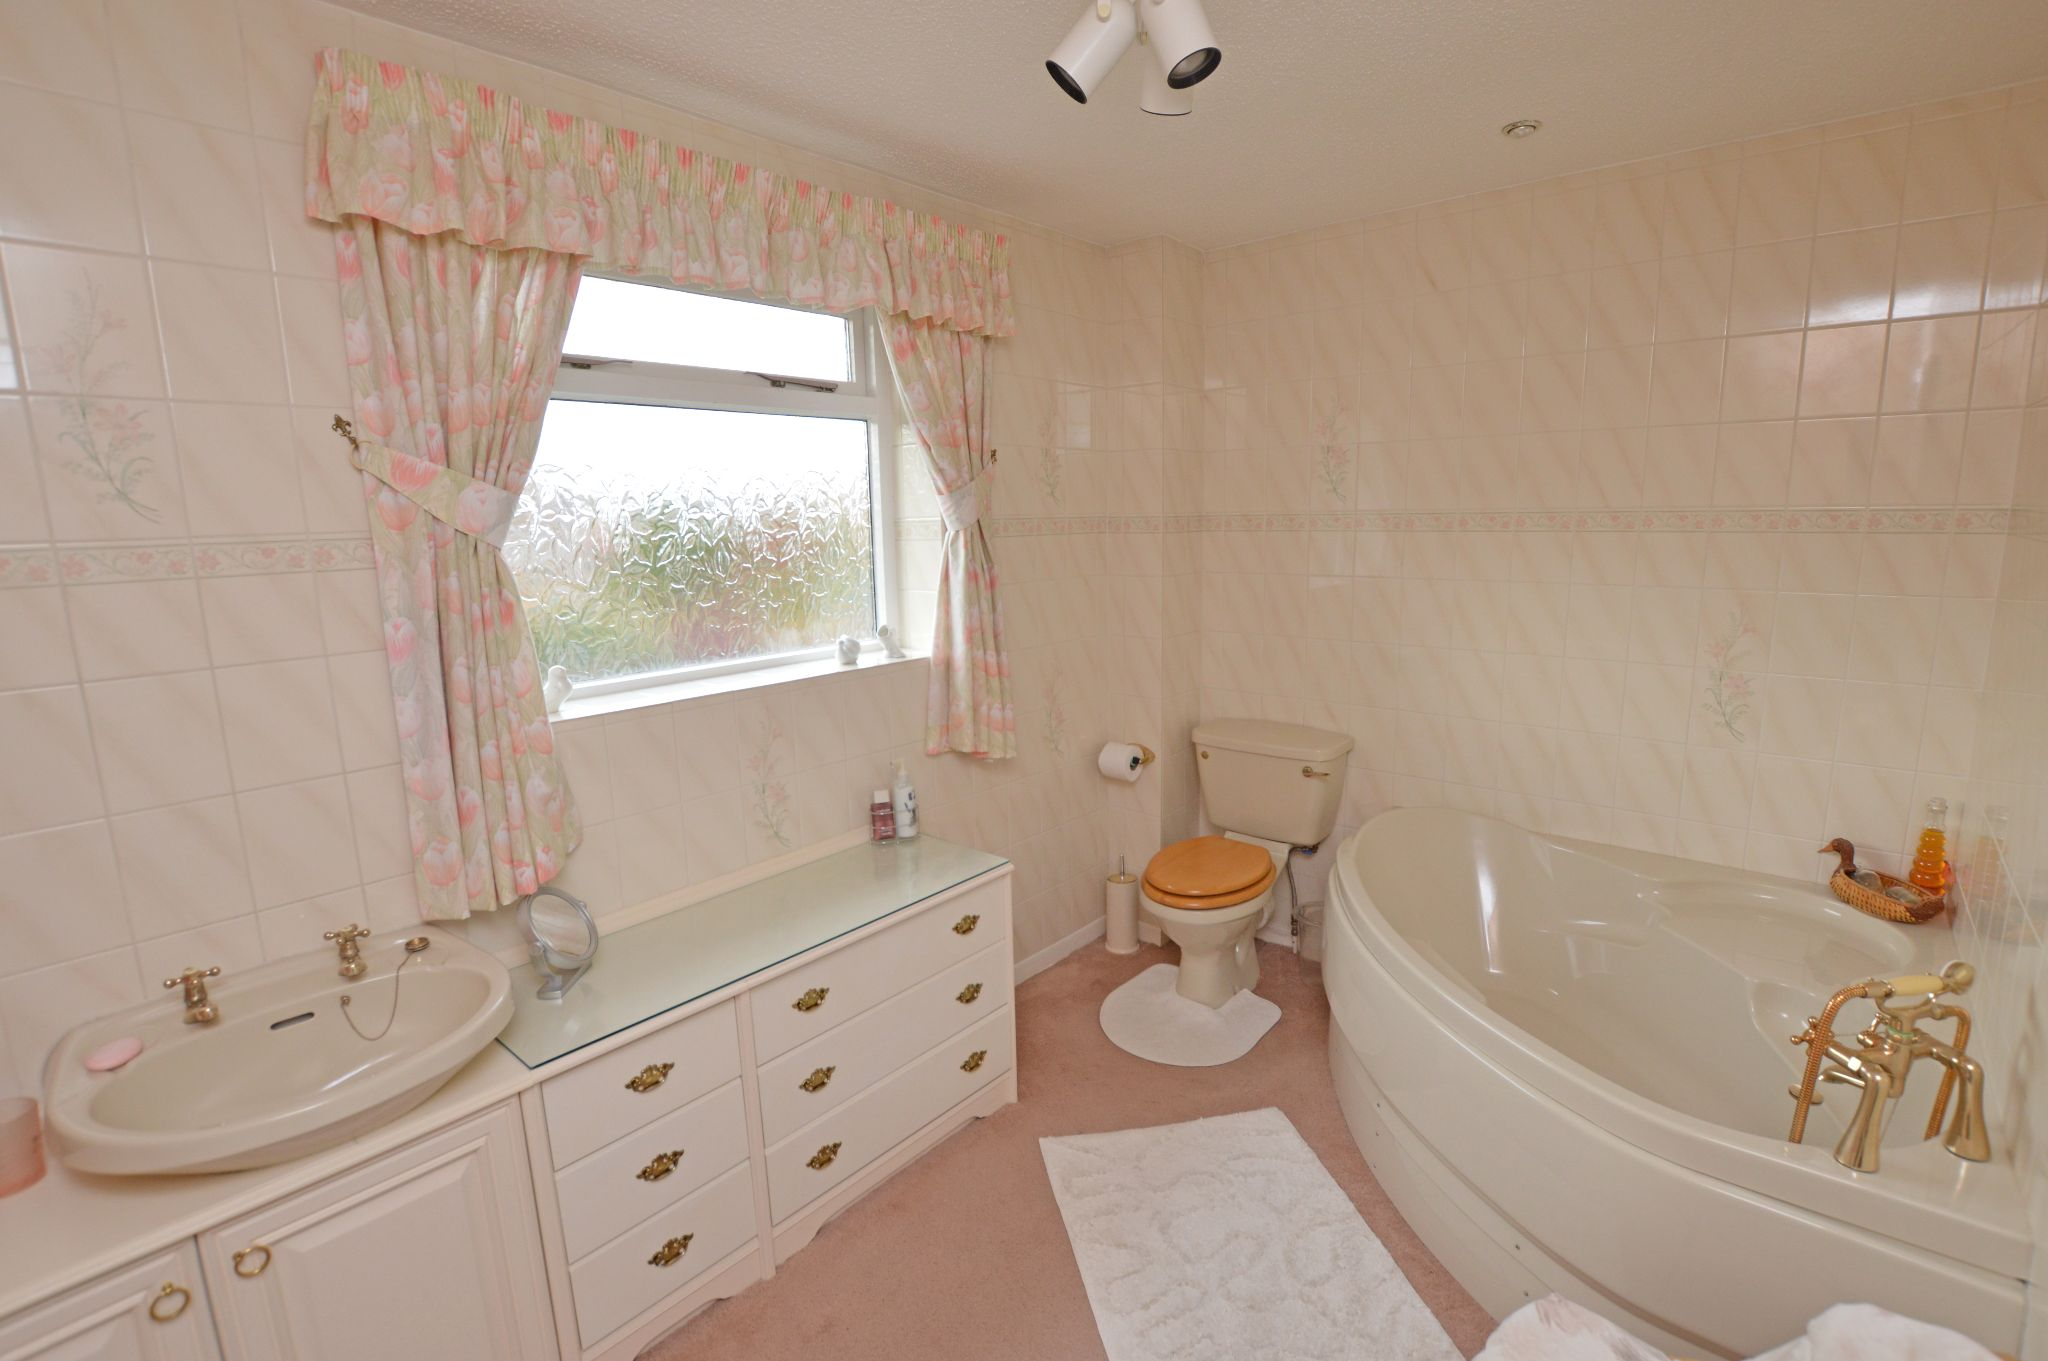 4 bedroom detached house For Sale in Abergele - Bathroom View 2